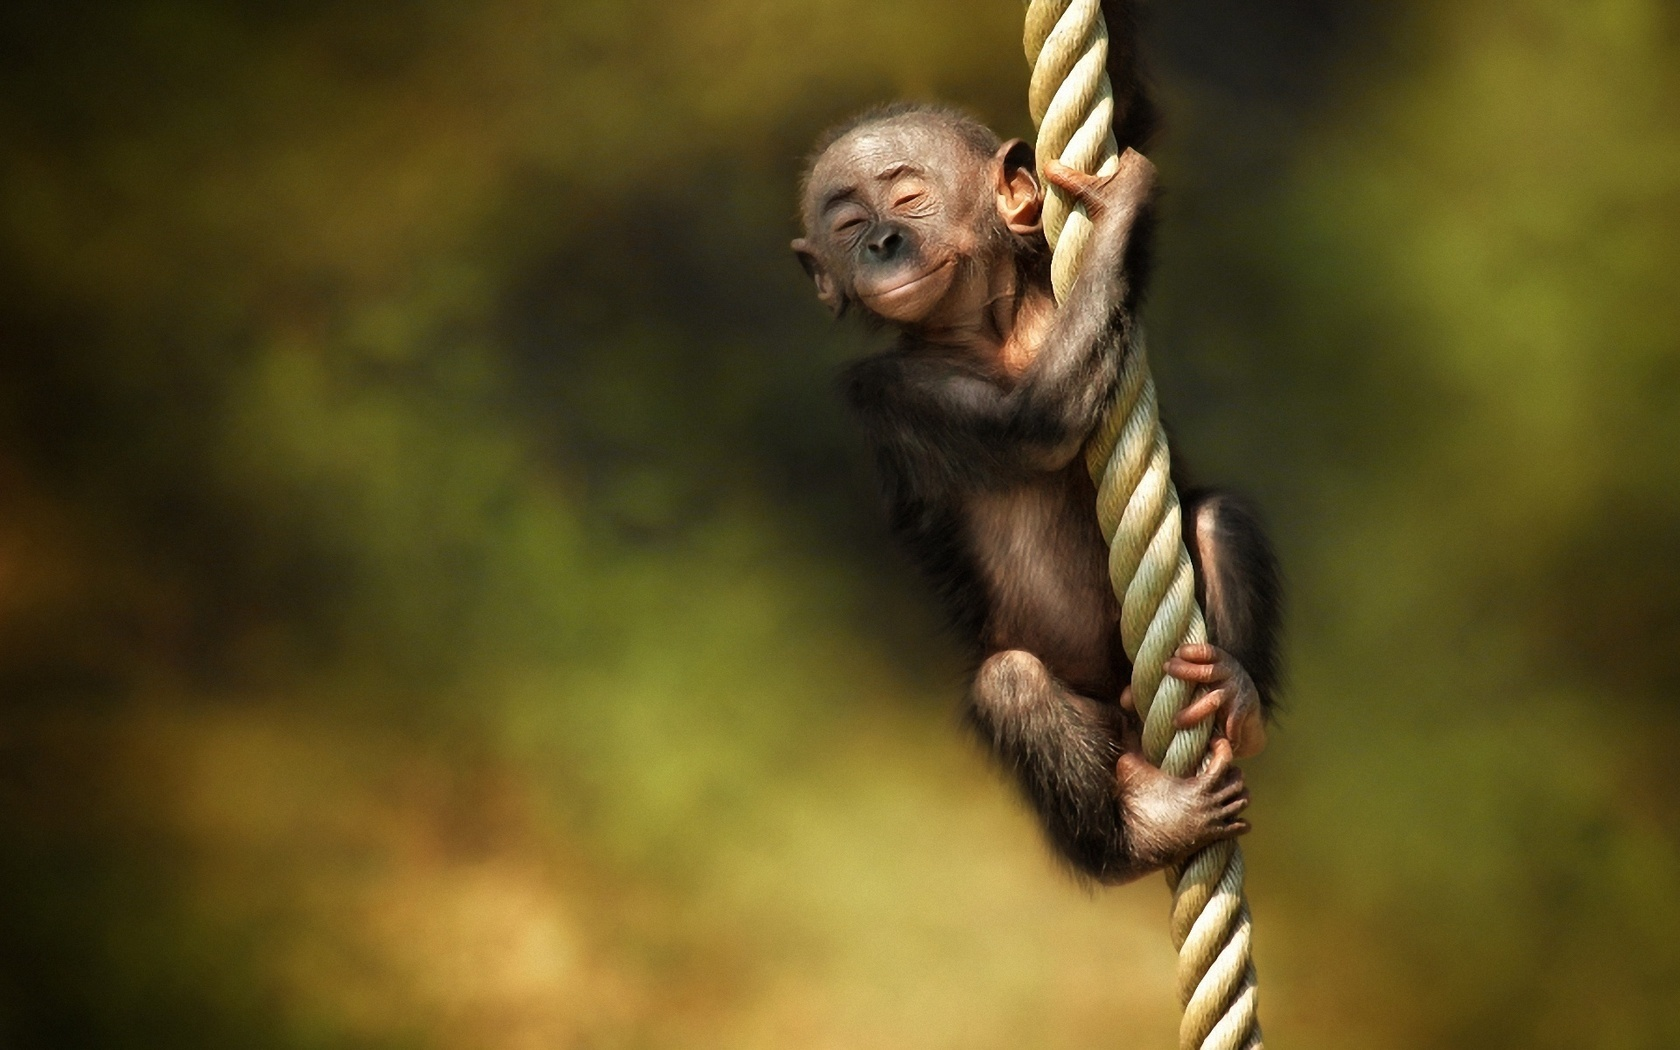 15607 Screensavers and Wallpapers Monkeys for phone. Download Funny, Animals, Monkeys pictures for free